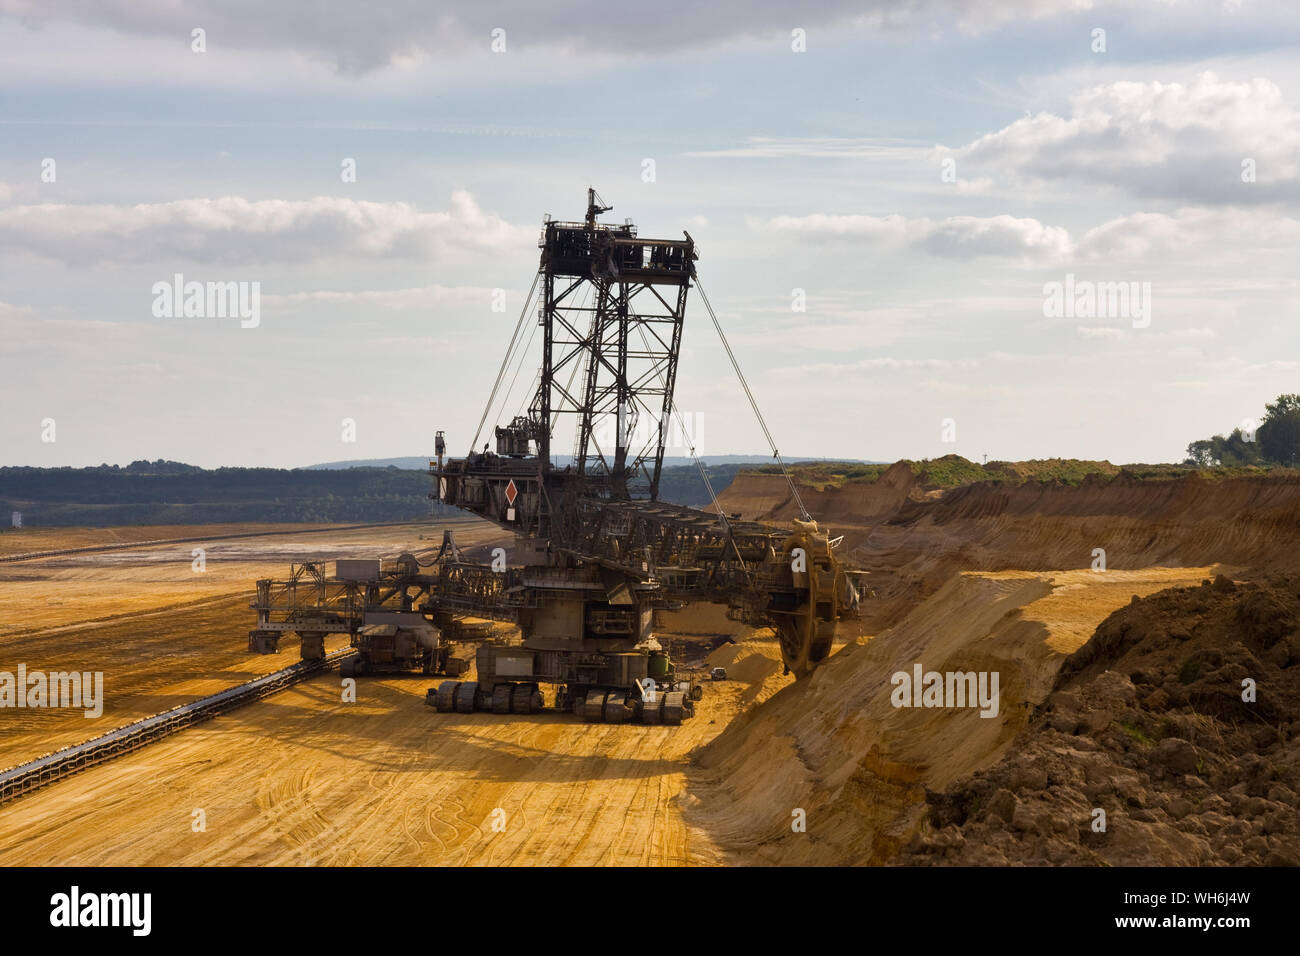 Giant bucket wheel excavator taking away the layers of ground before digging the brown coal. Stock Photo